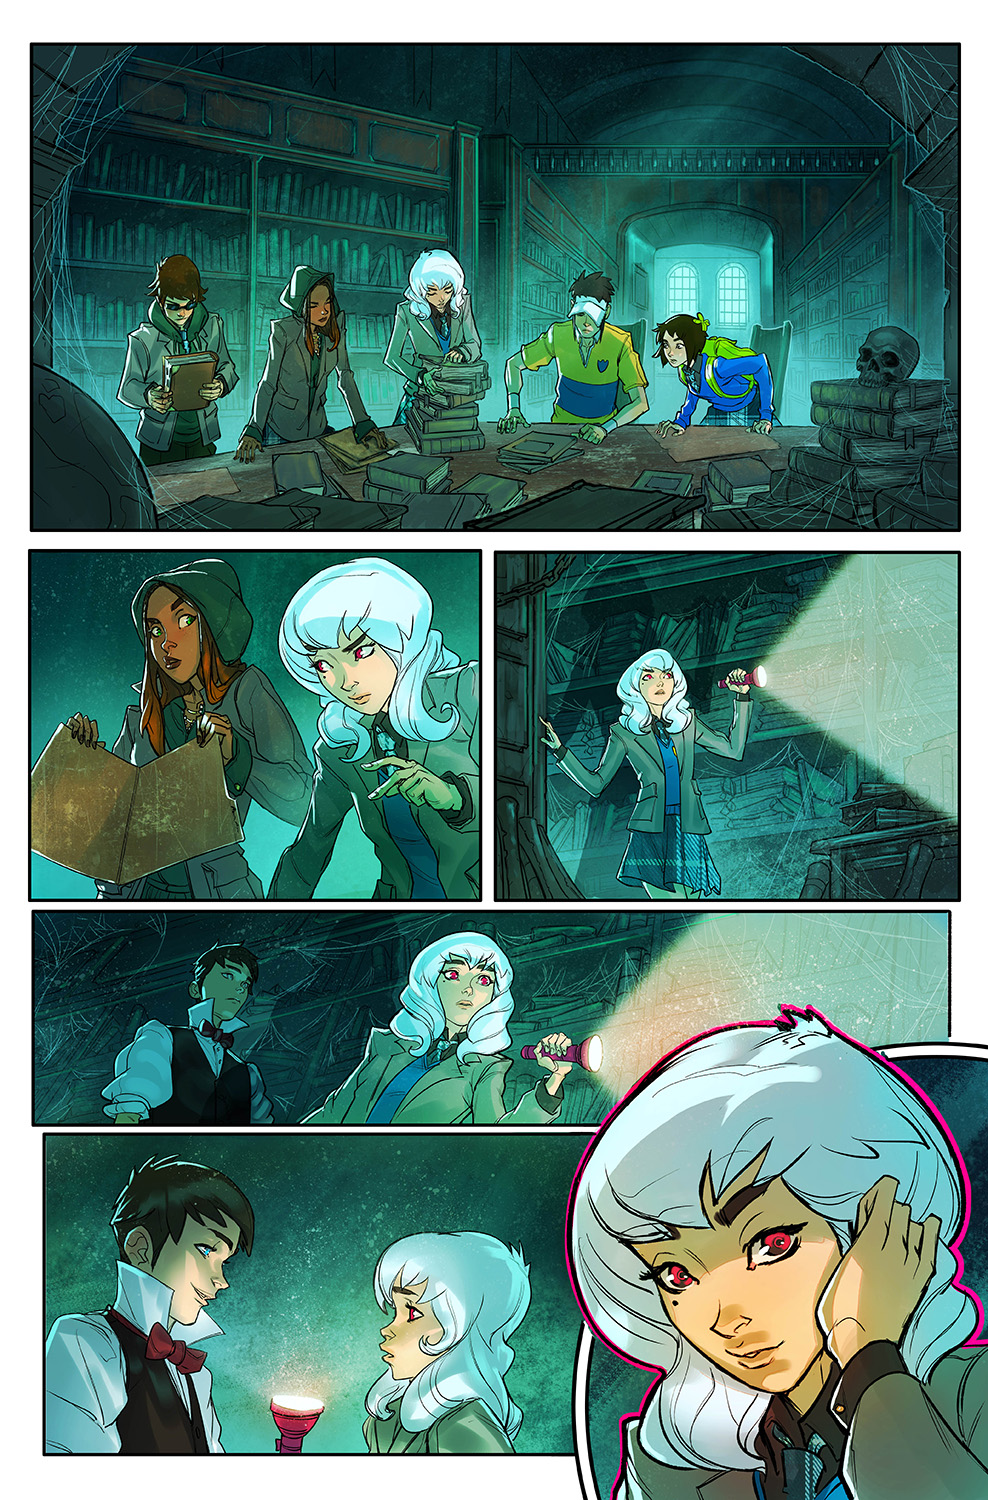 GA_Page7_JonLam_Colour.jpg